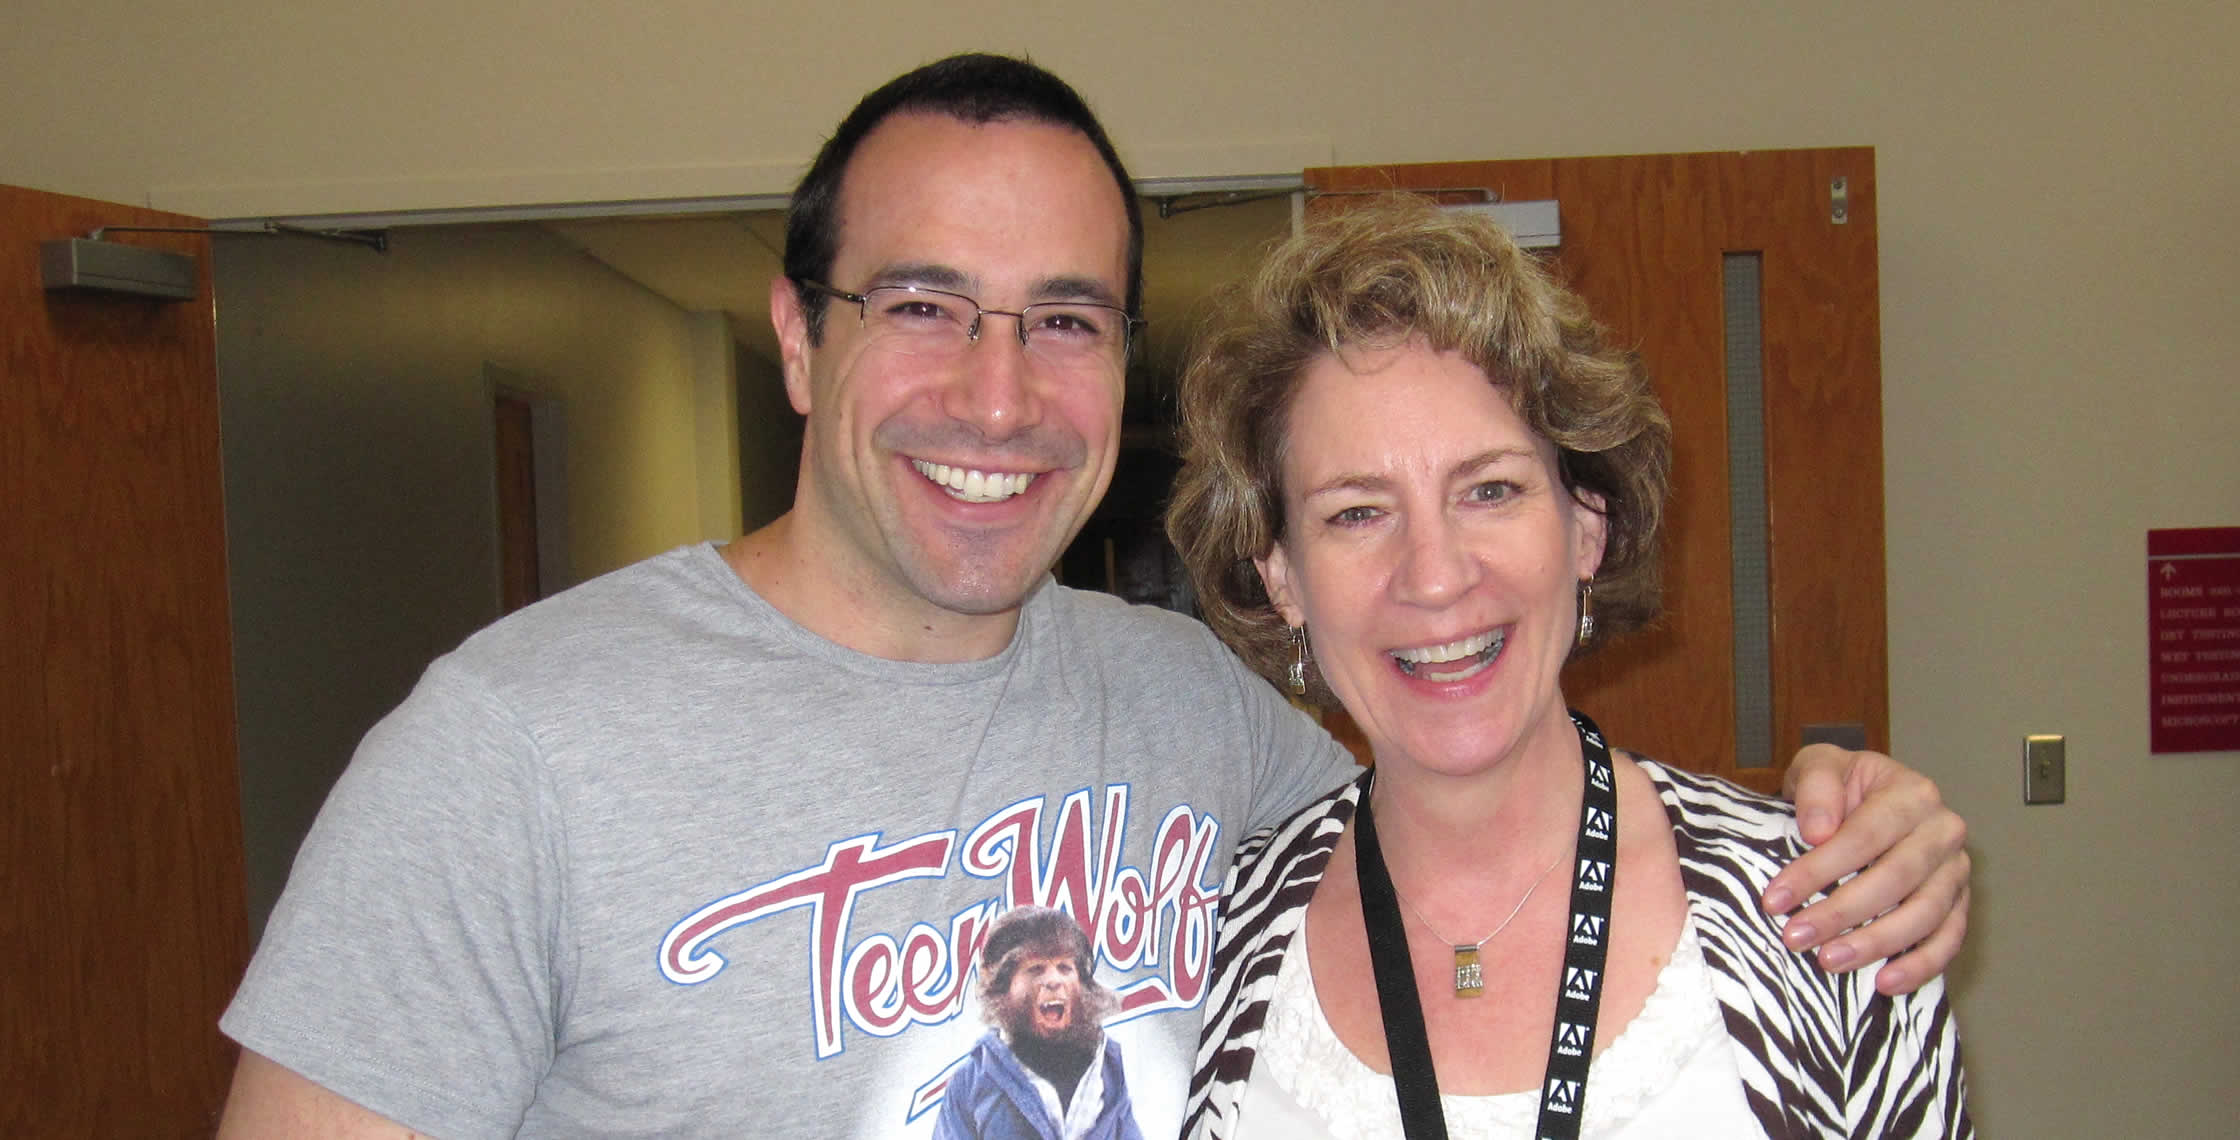 Ben Nadel at NCDevCon 2011 (Raleigh, NC) with: Lynn Ebanks